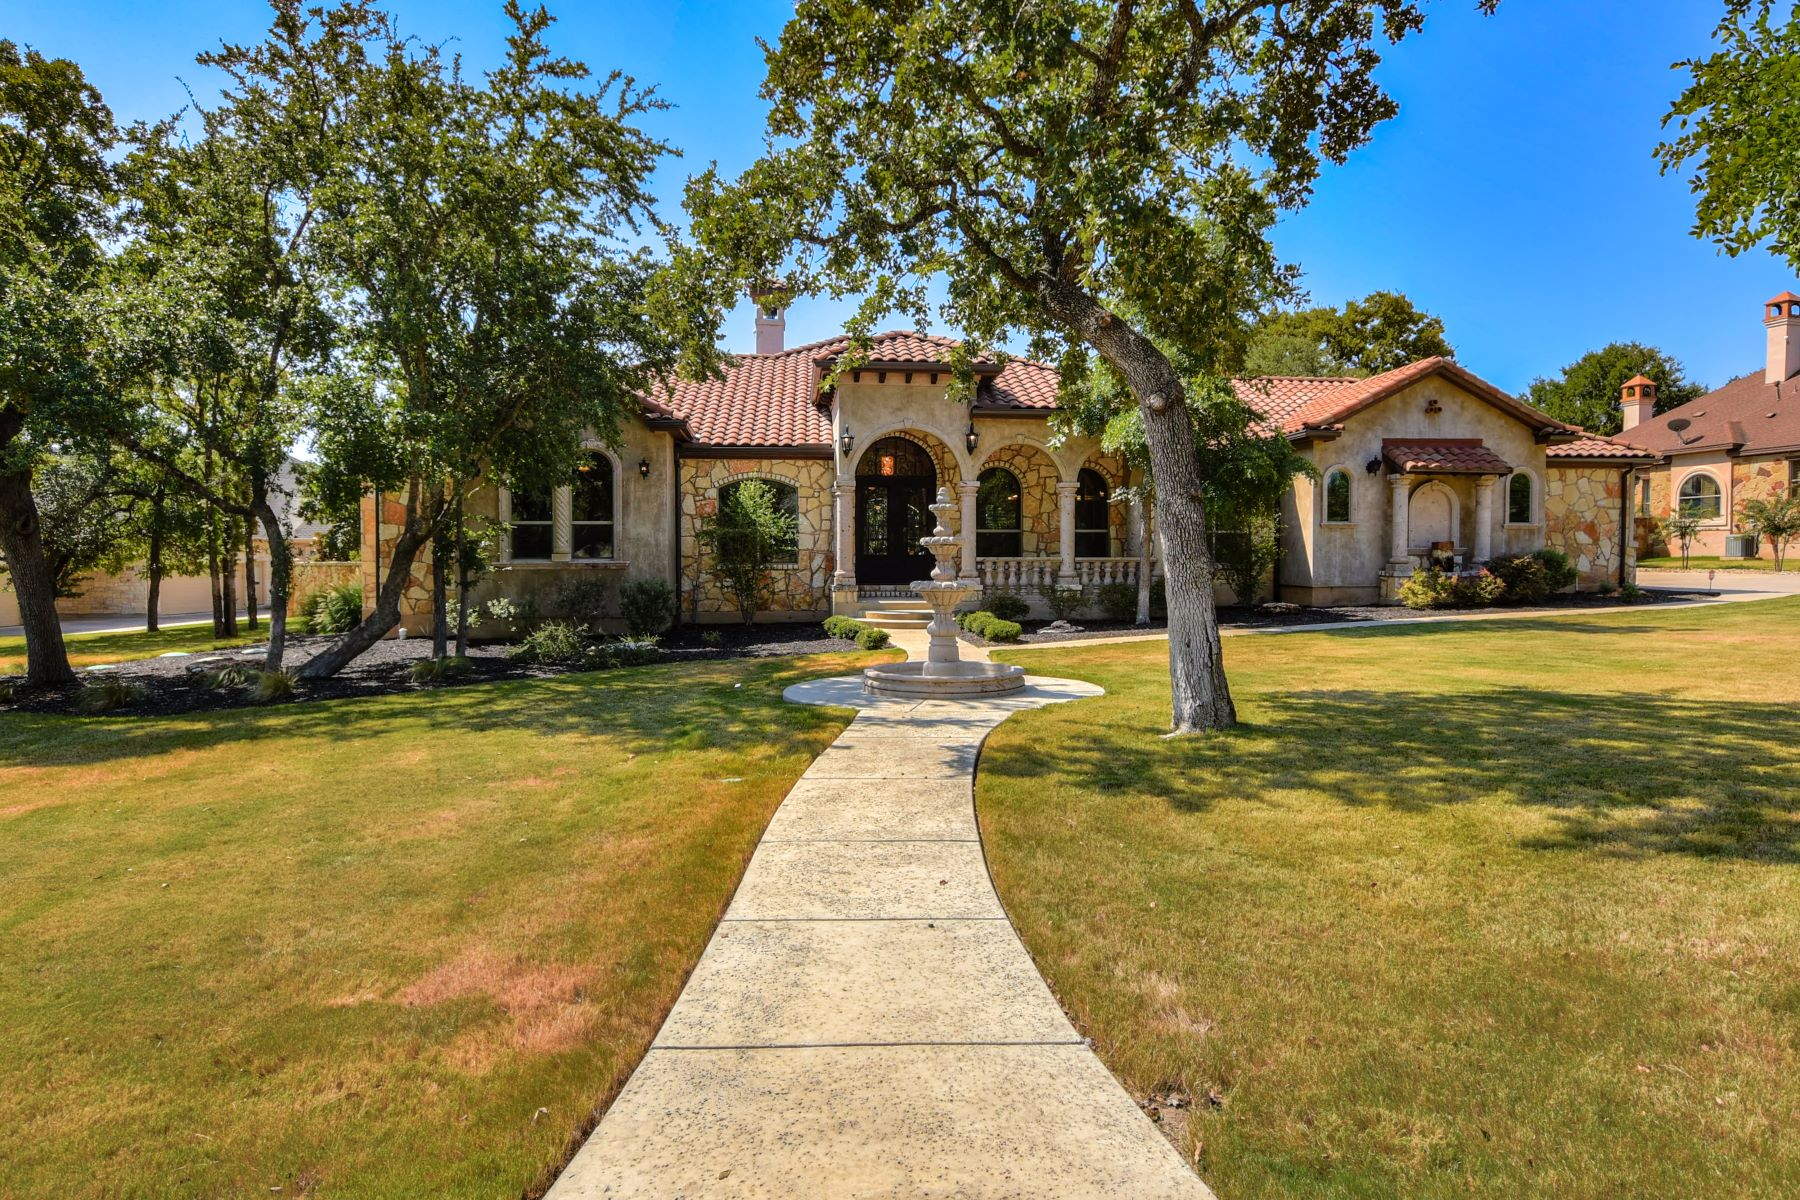 Single Family Homes for Active at 127 Vista Lane, Georgetown, TX 78633 127 Vista Lane Georgetown, Texas 78633 United States